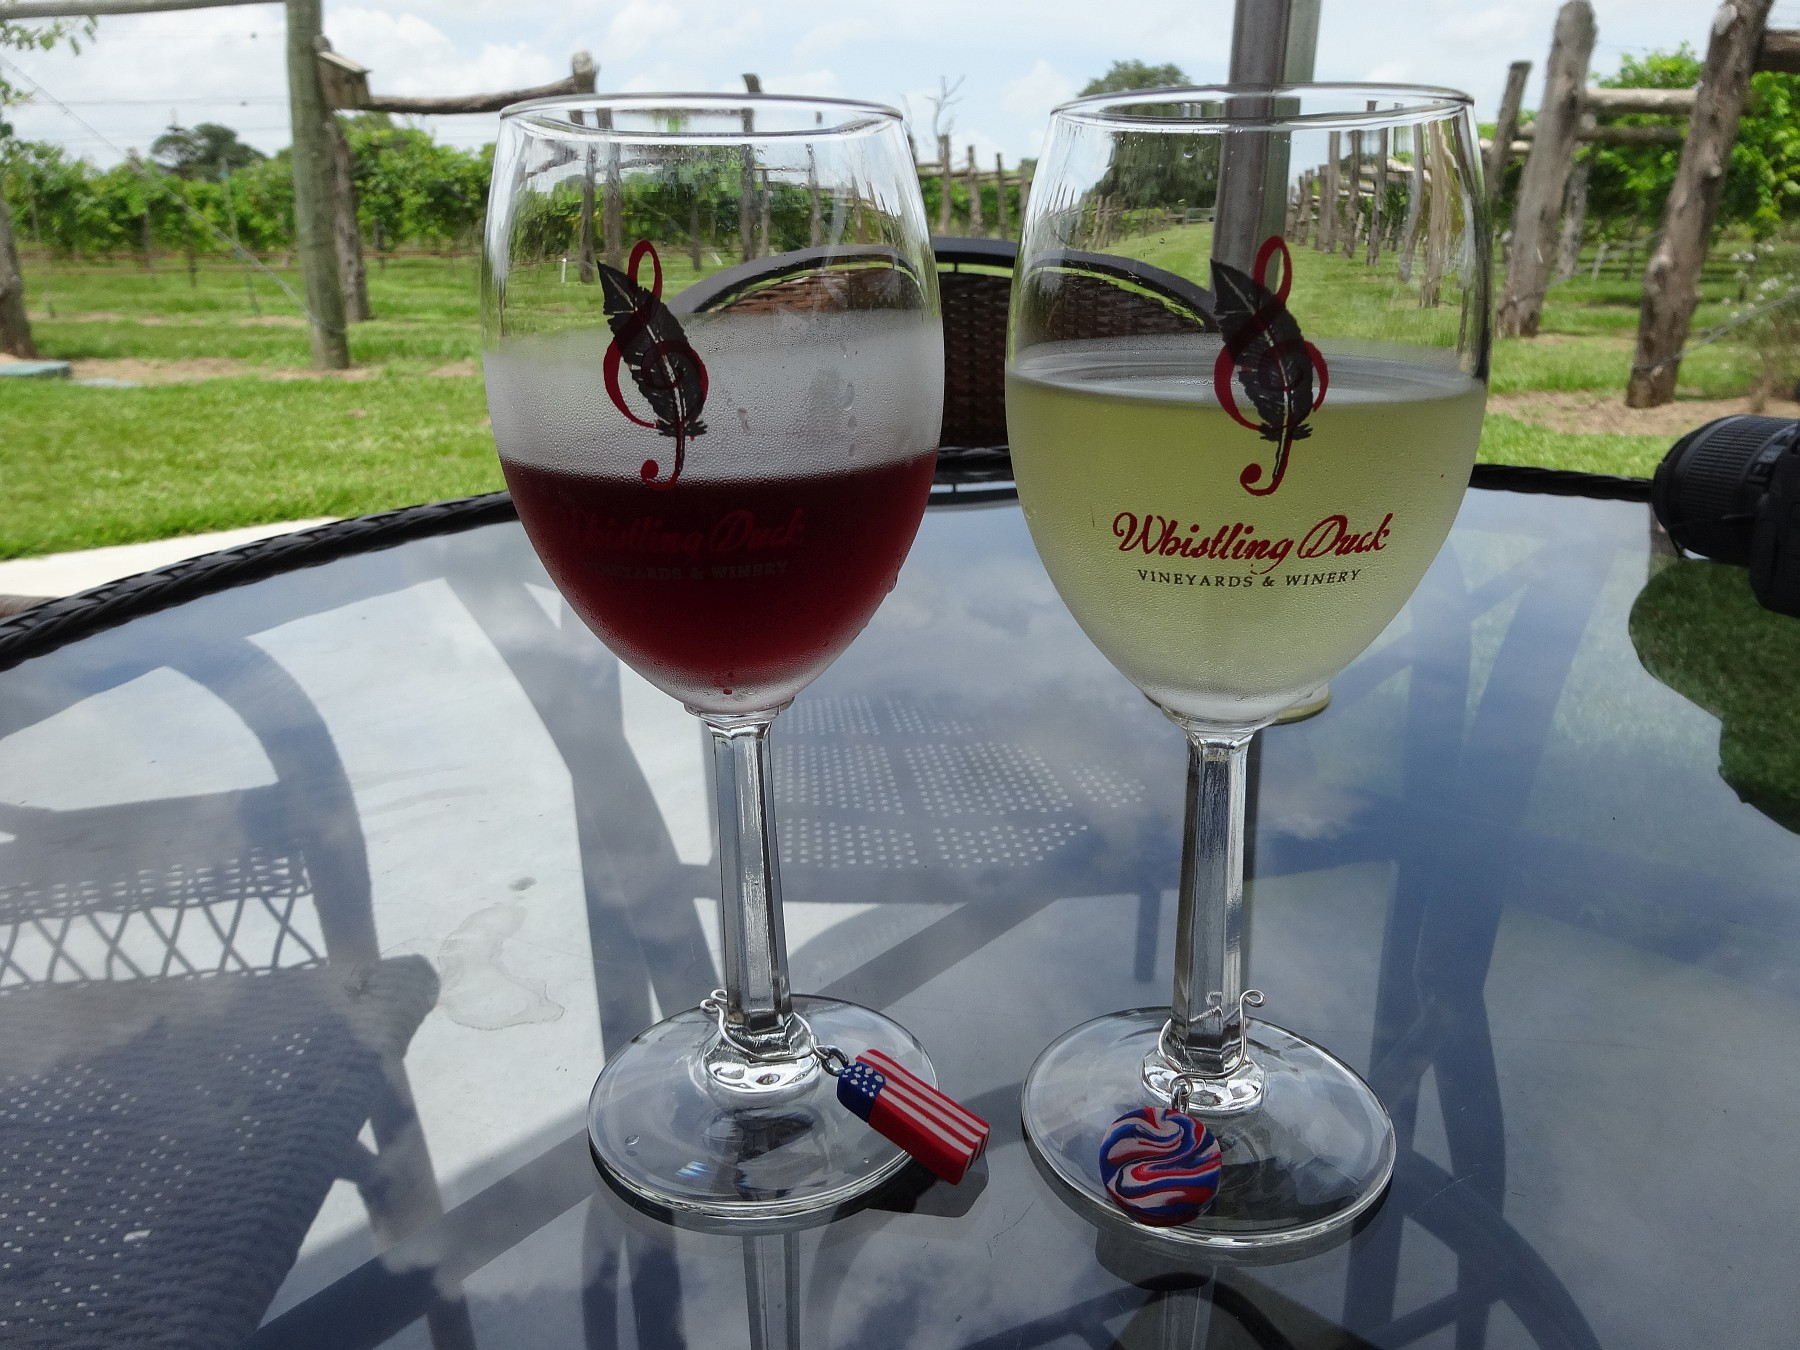 Whistling Duck Vineyards & Winery